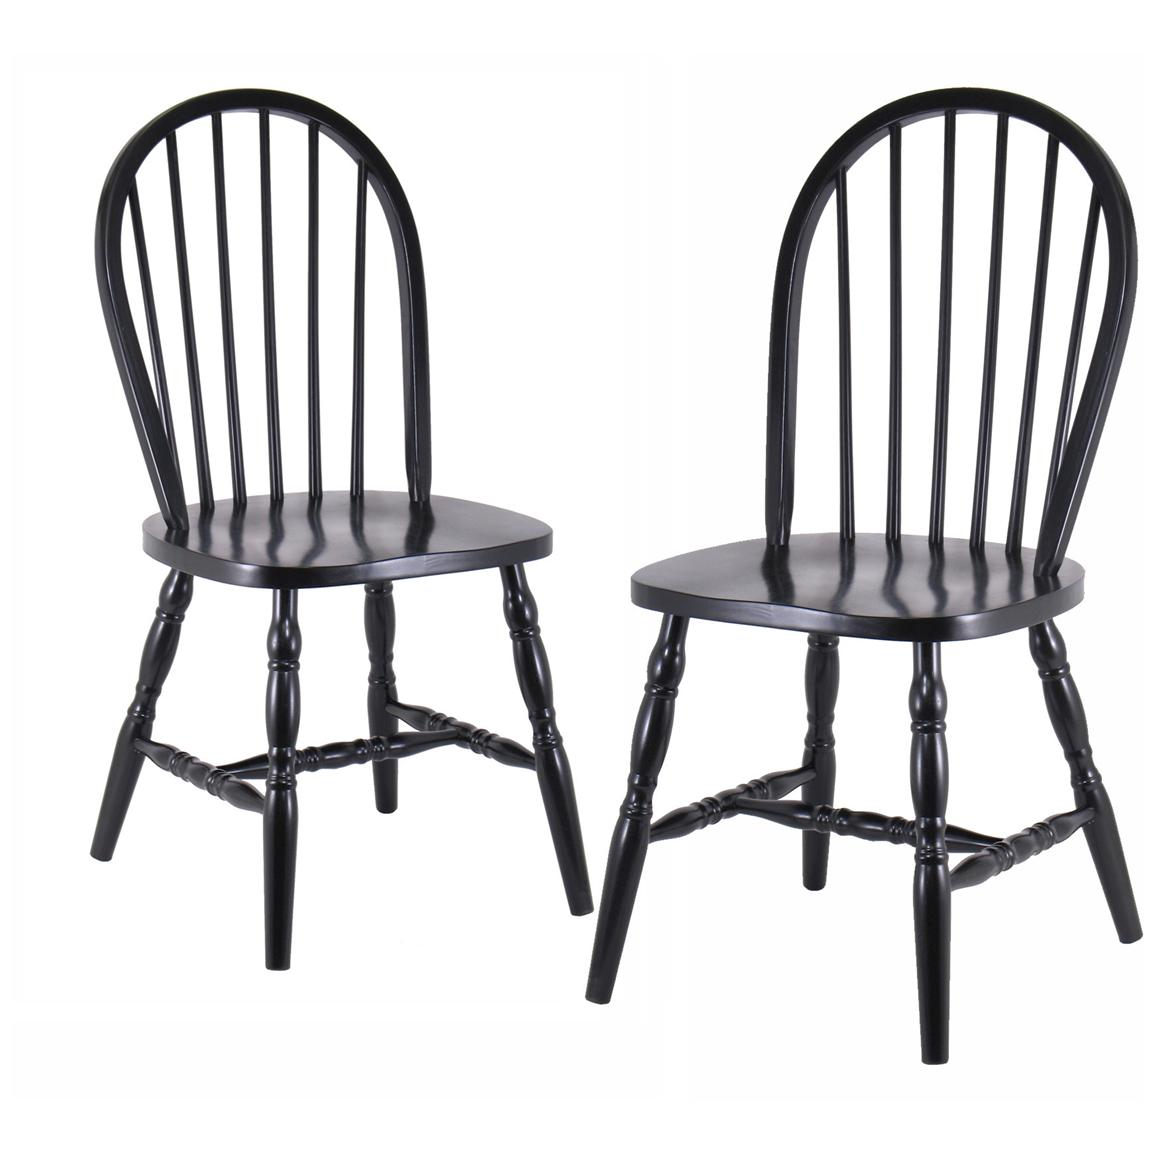 Winsome Set of 2 Black Windsor Chairs